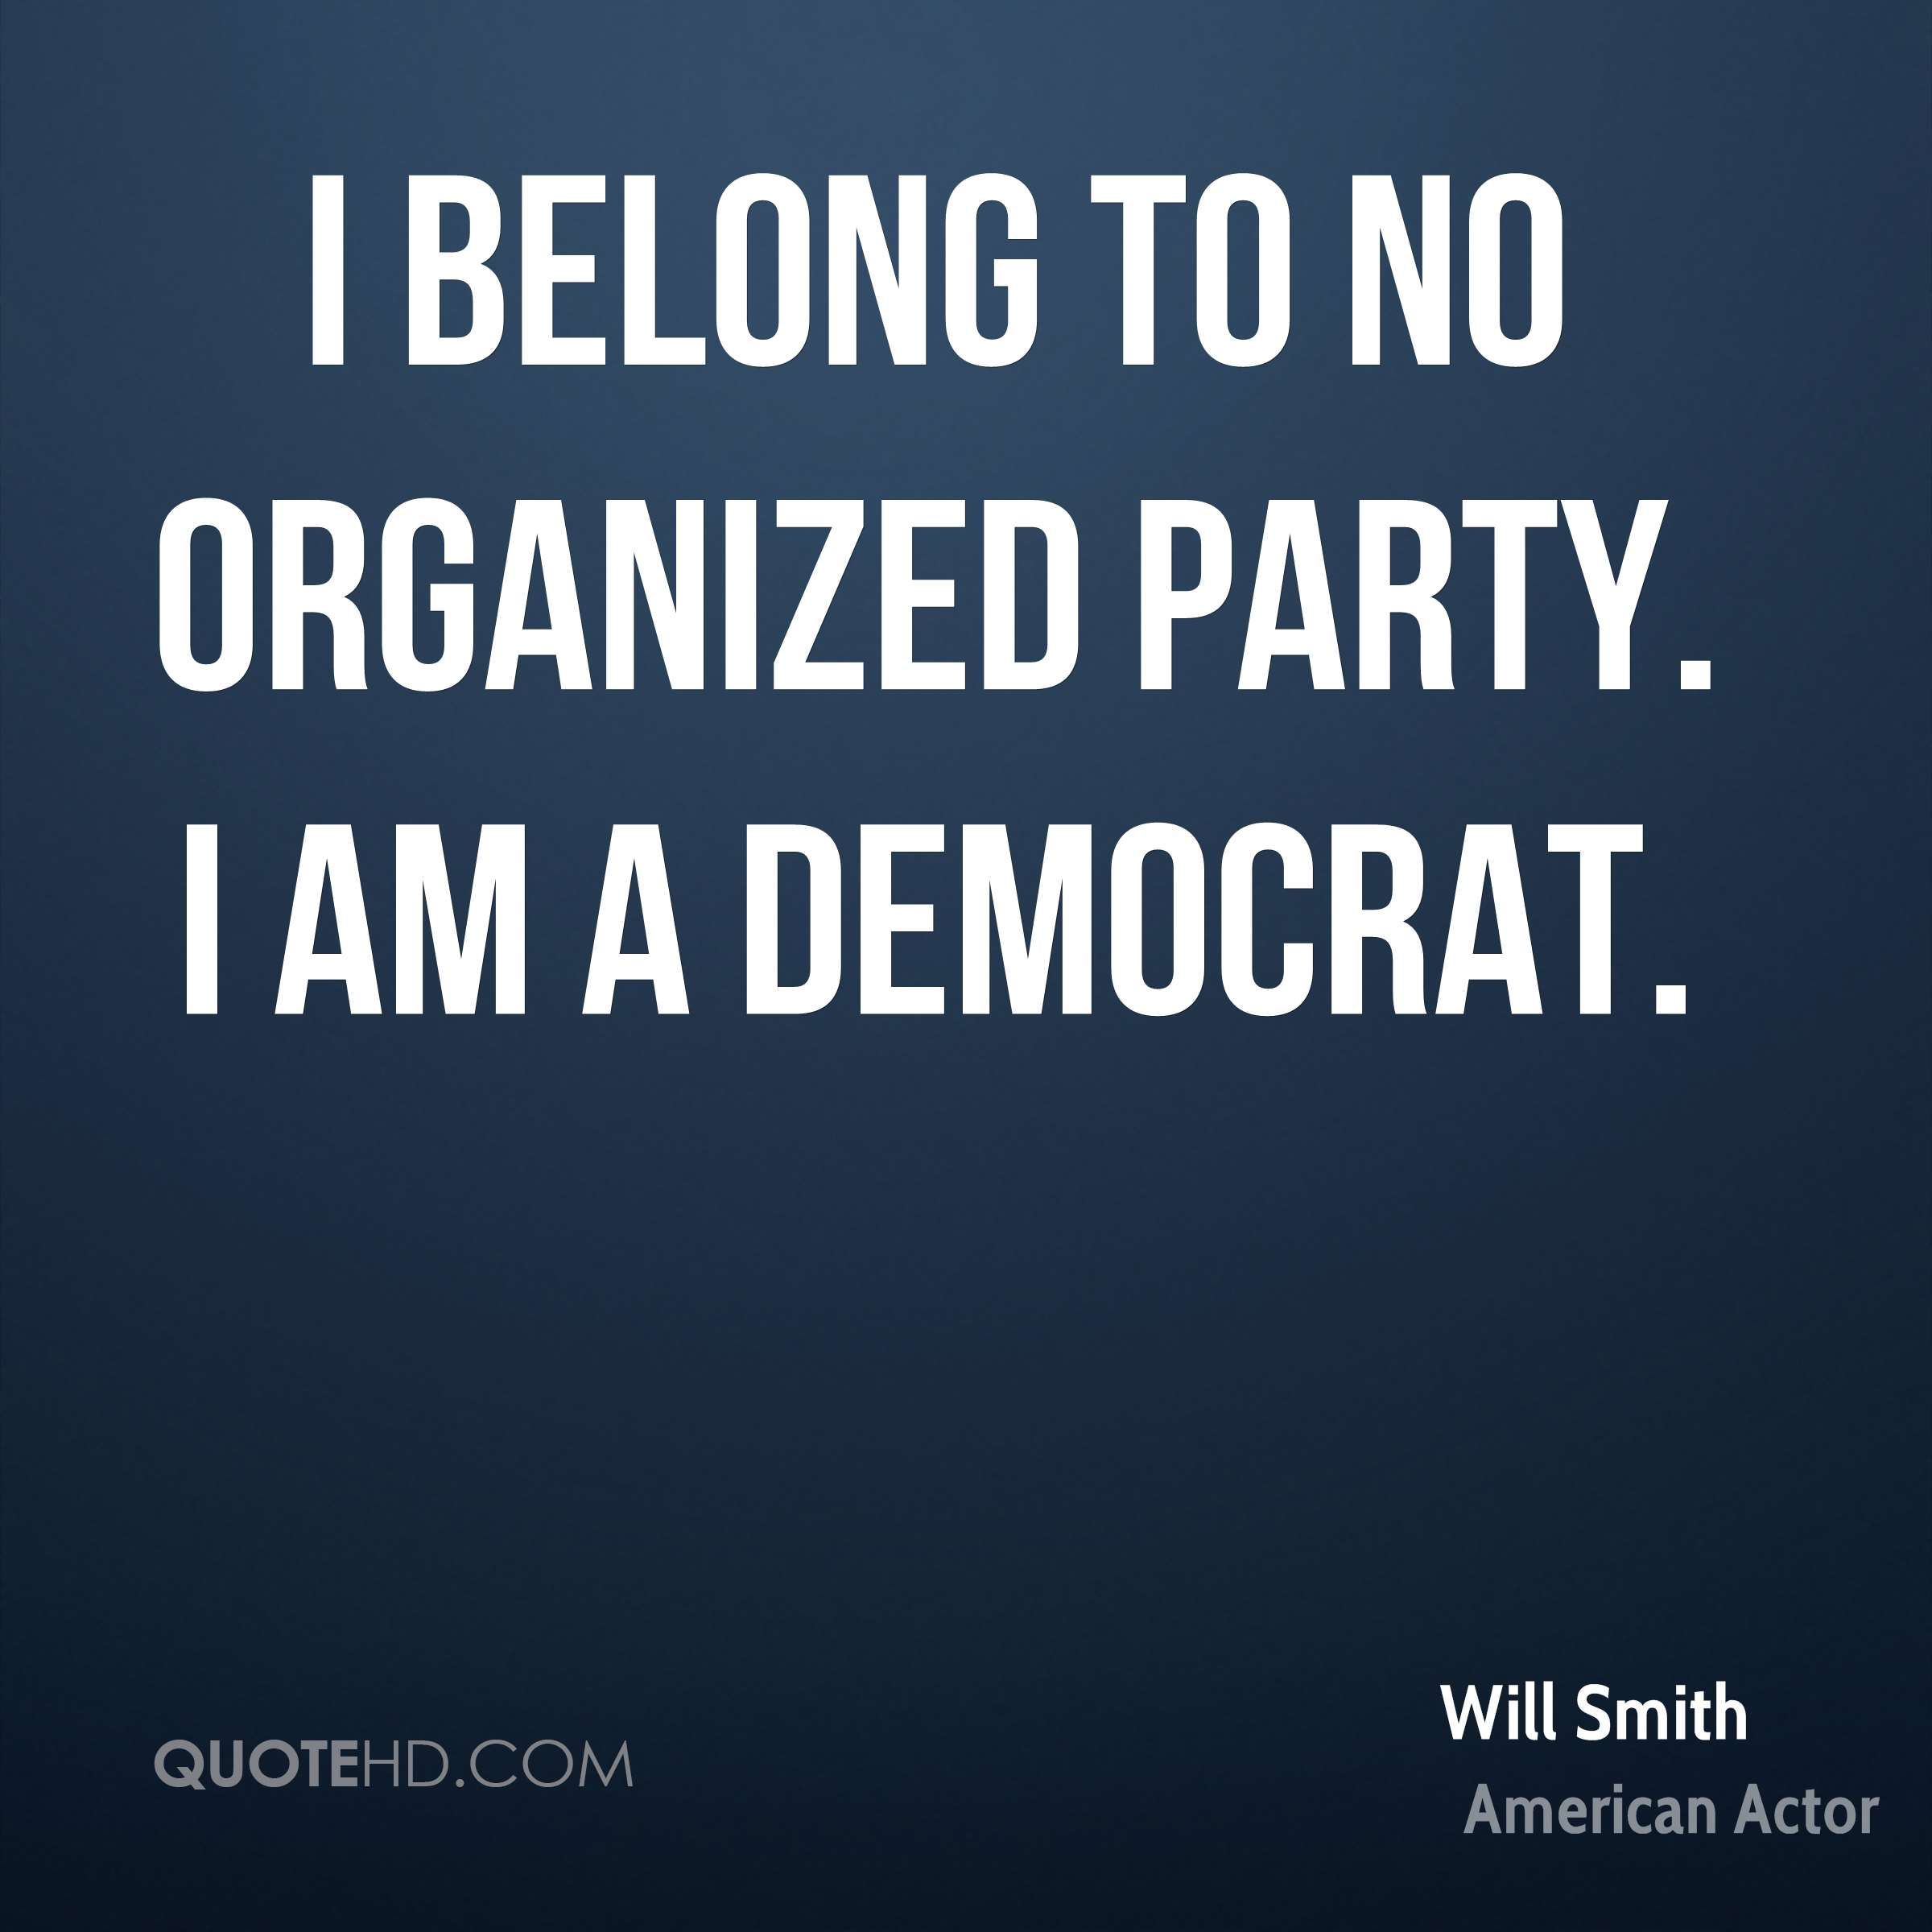 I belong to no organized party. I am a Democrat.